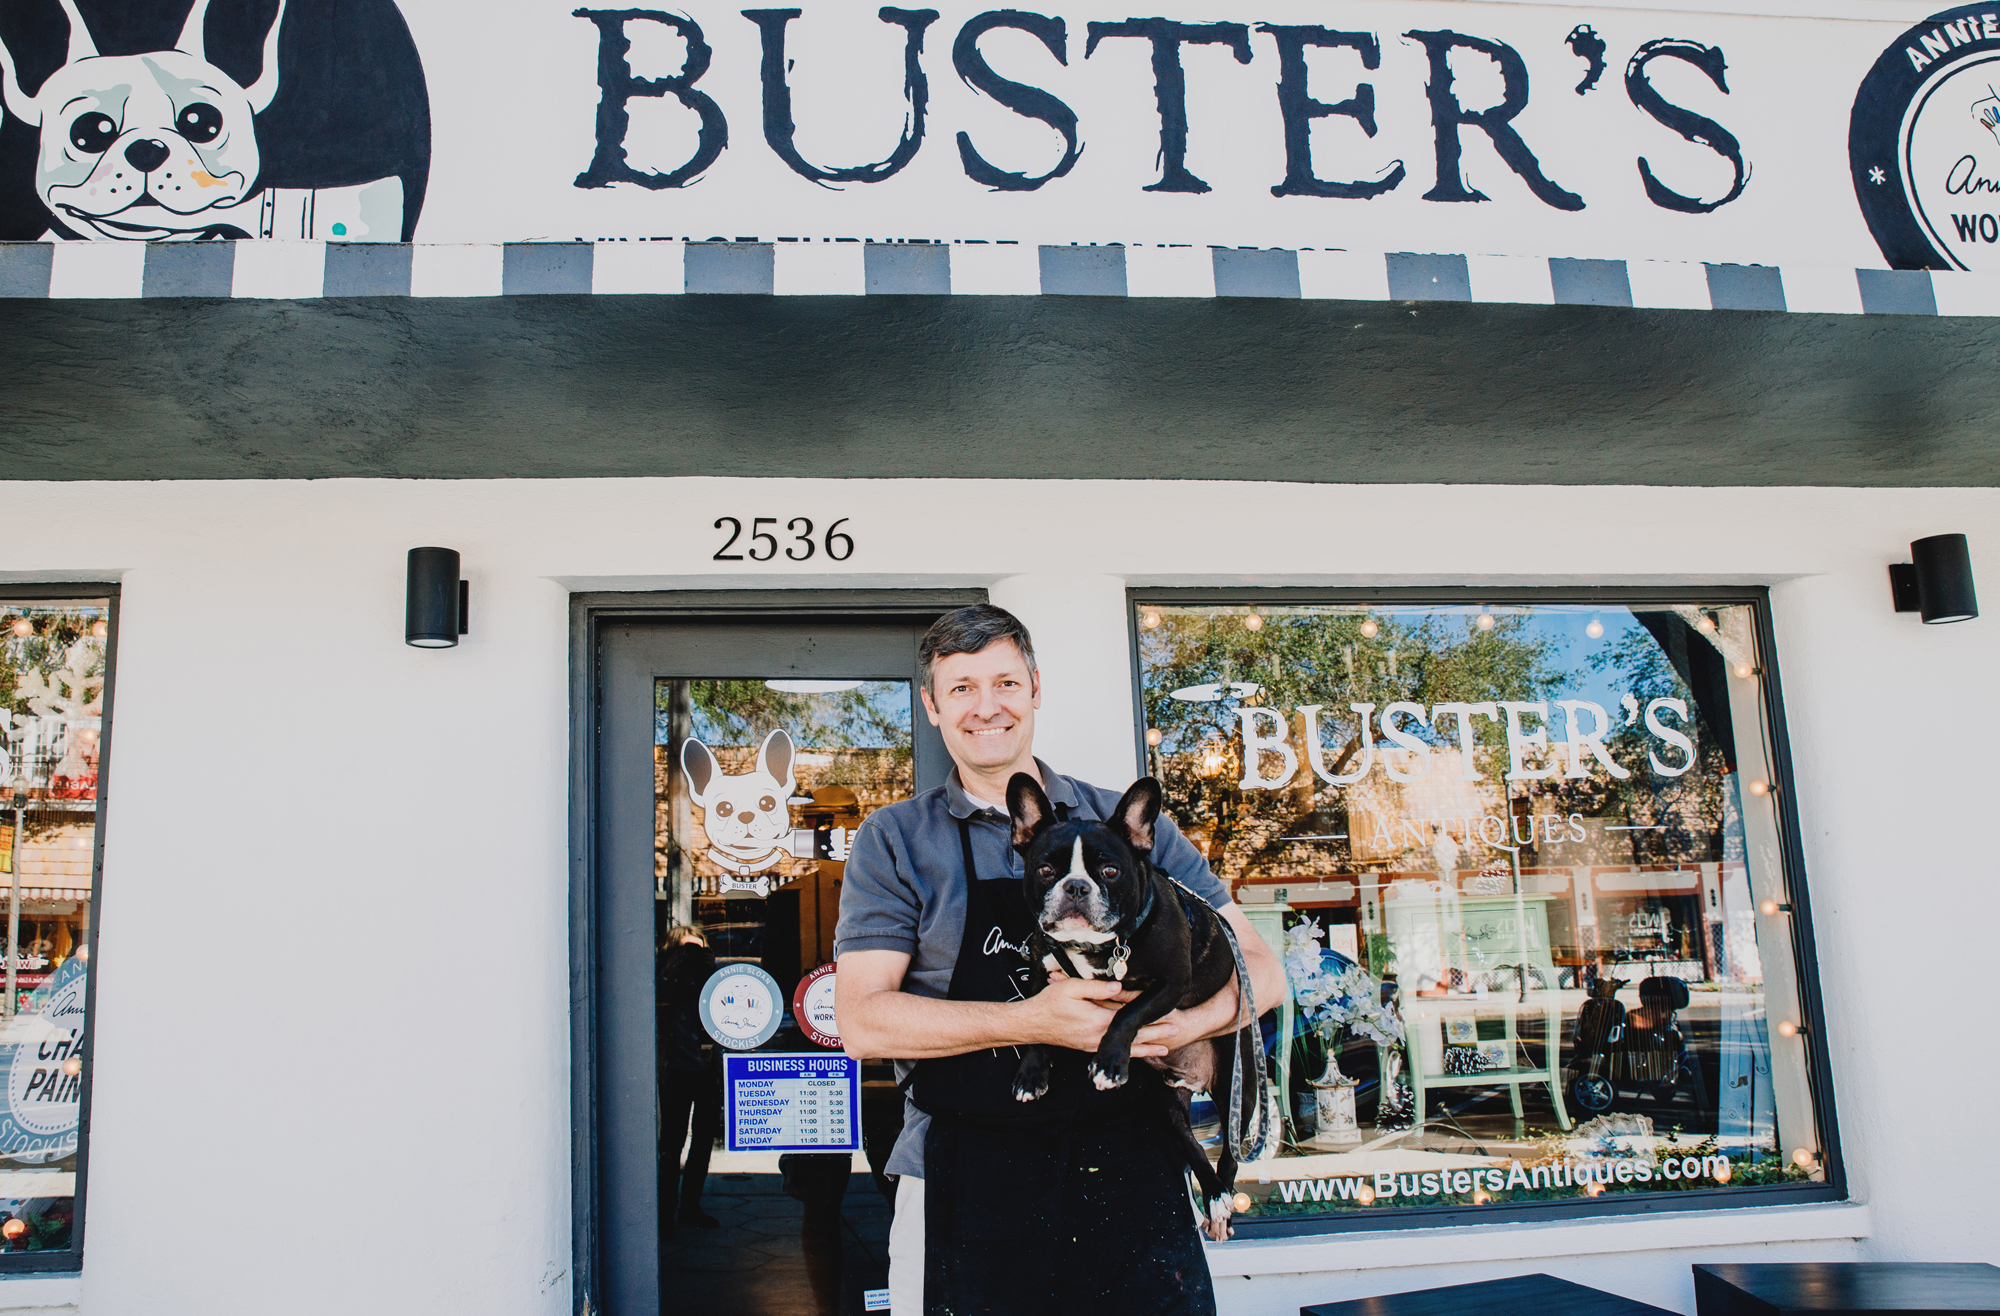 Owner Keith Gilbert with his loyal friend/brand ambassador, Buster (Buster's Antiques. By Kelly Nash Photography.)